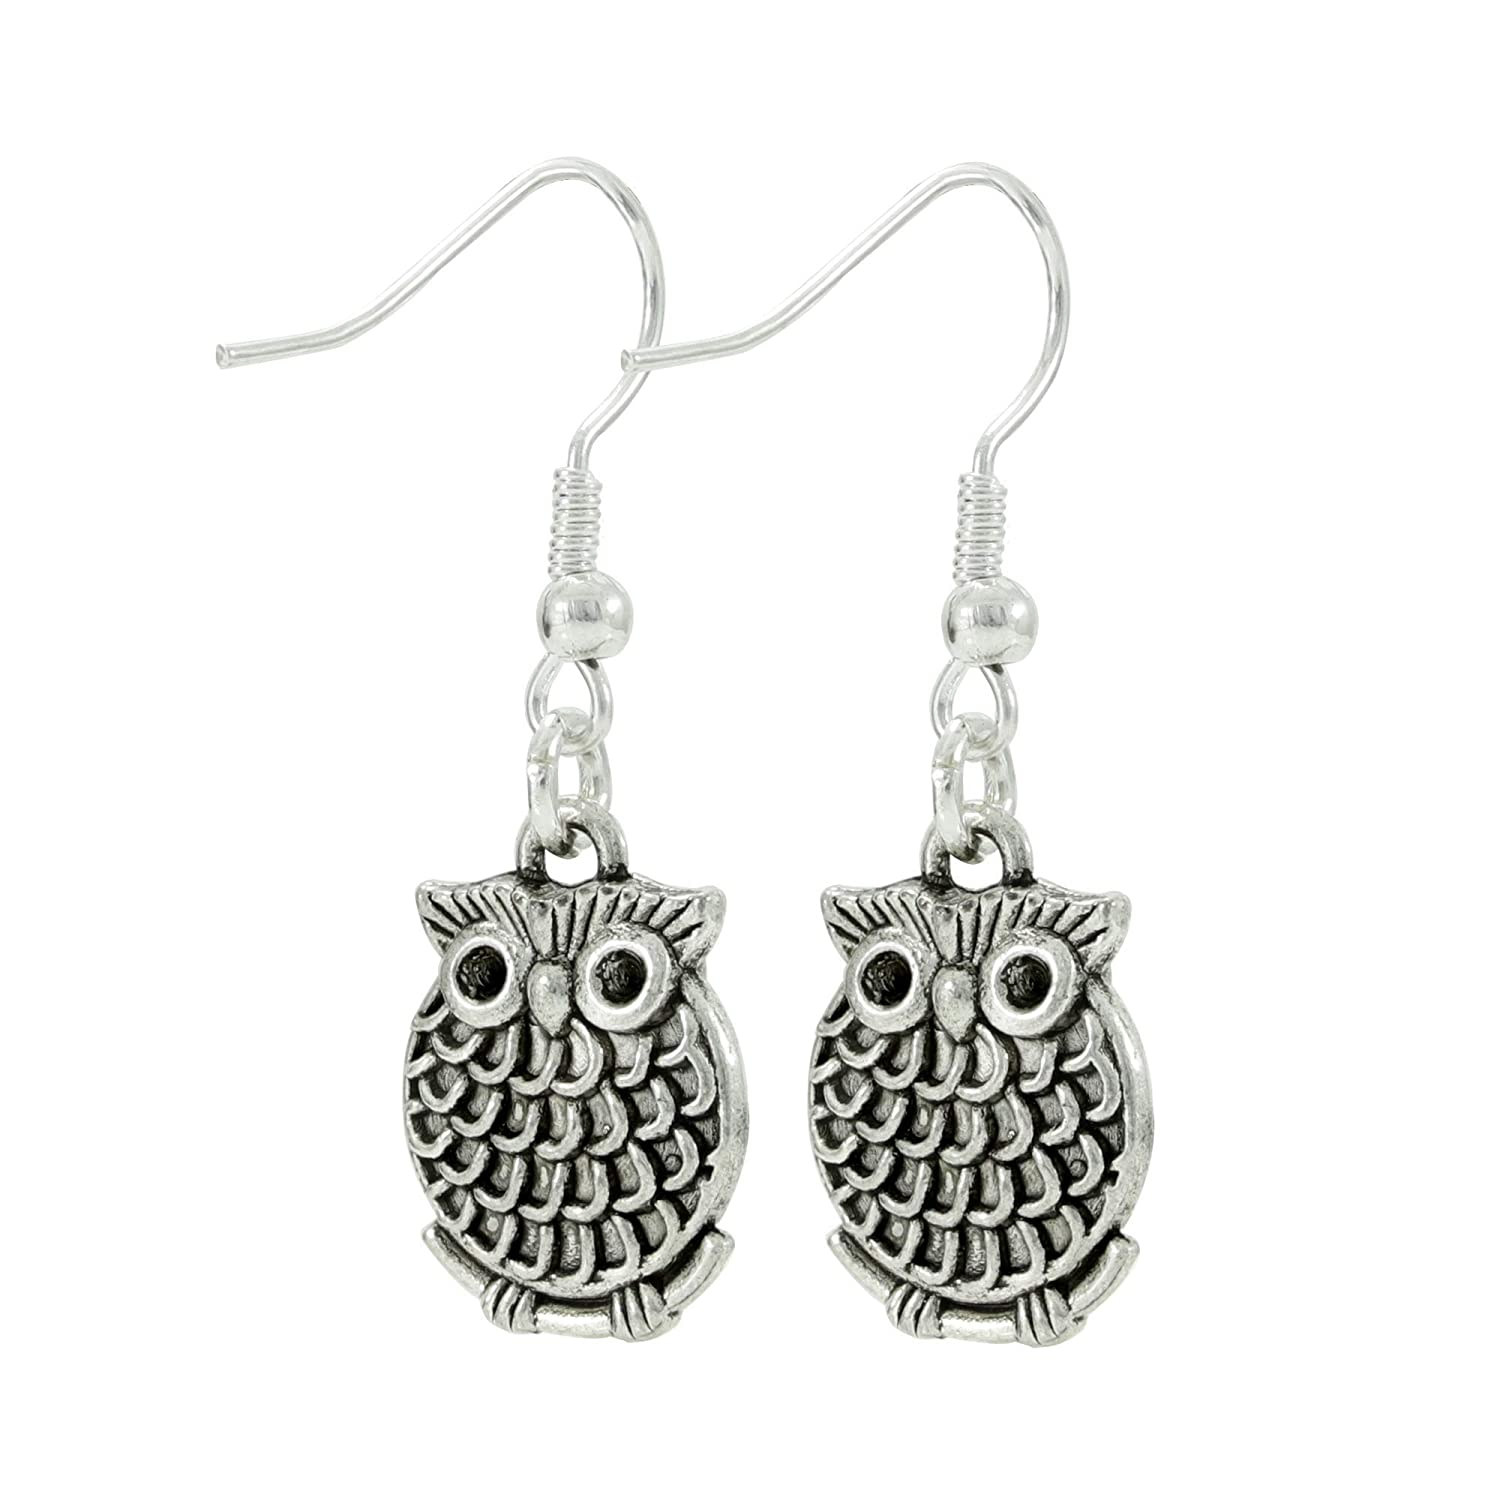 Owl Dangle Earrings, Small Silver Tone Bird Jewelry, Handmade Women's Earring Set